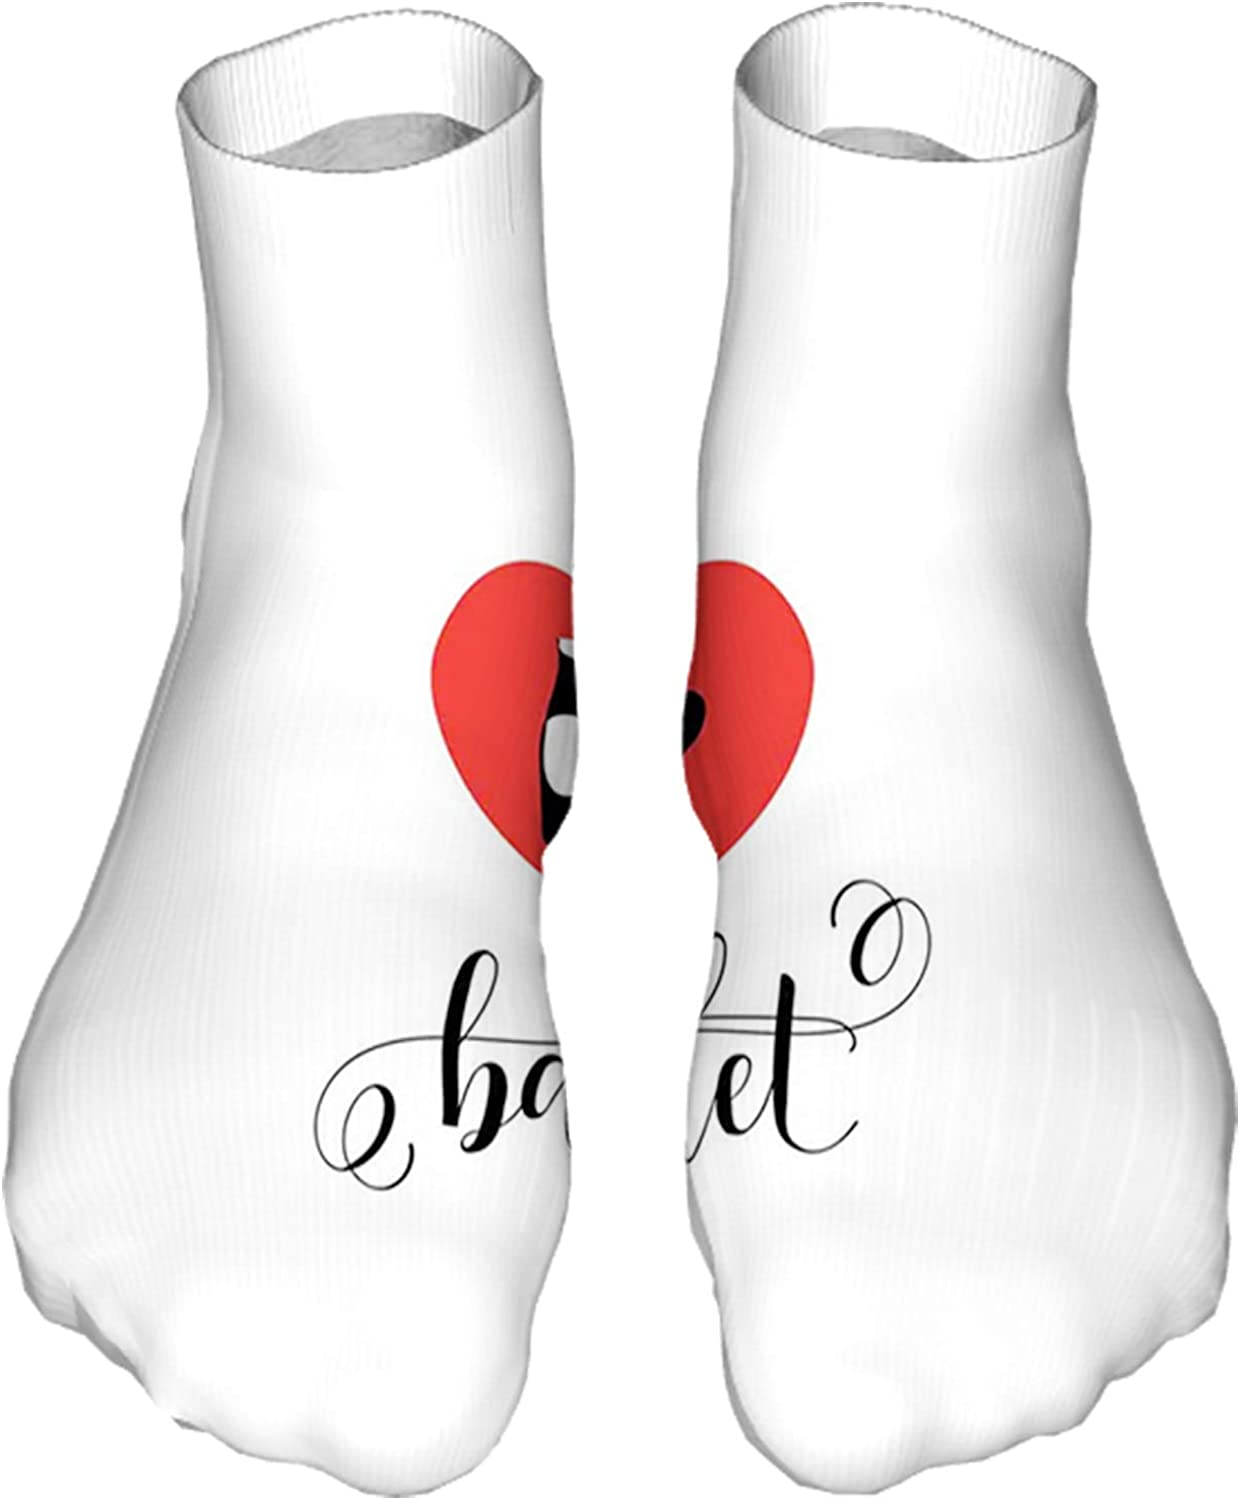 Women's Colorful Patterned Unisex Low Cut/No Show Socks,I Love Ballet Phrase with Ballerina Feet Inside a Heart